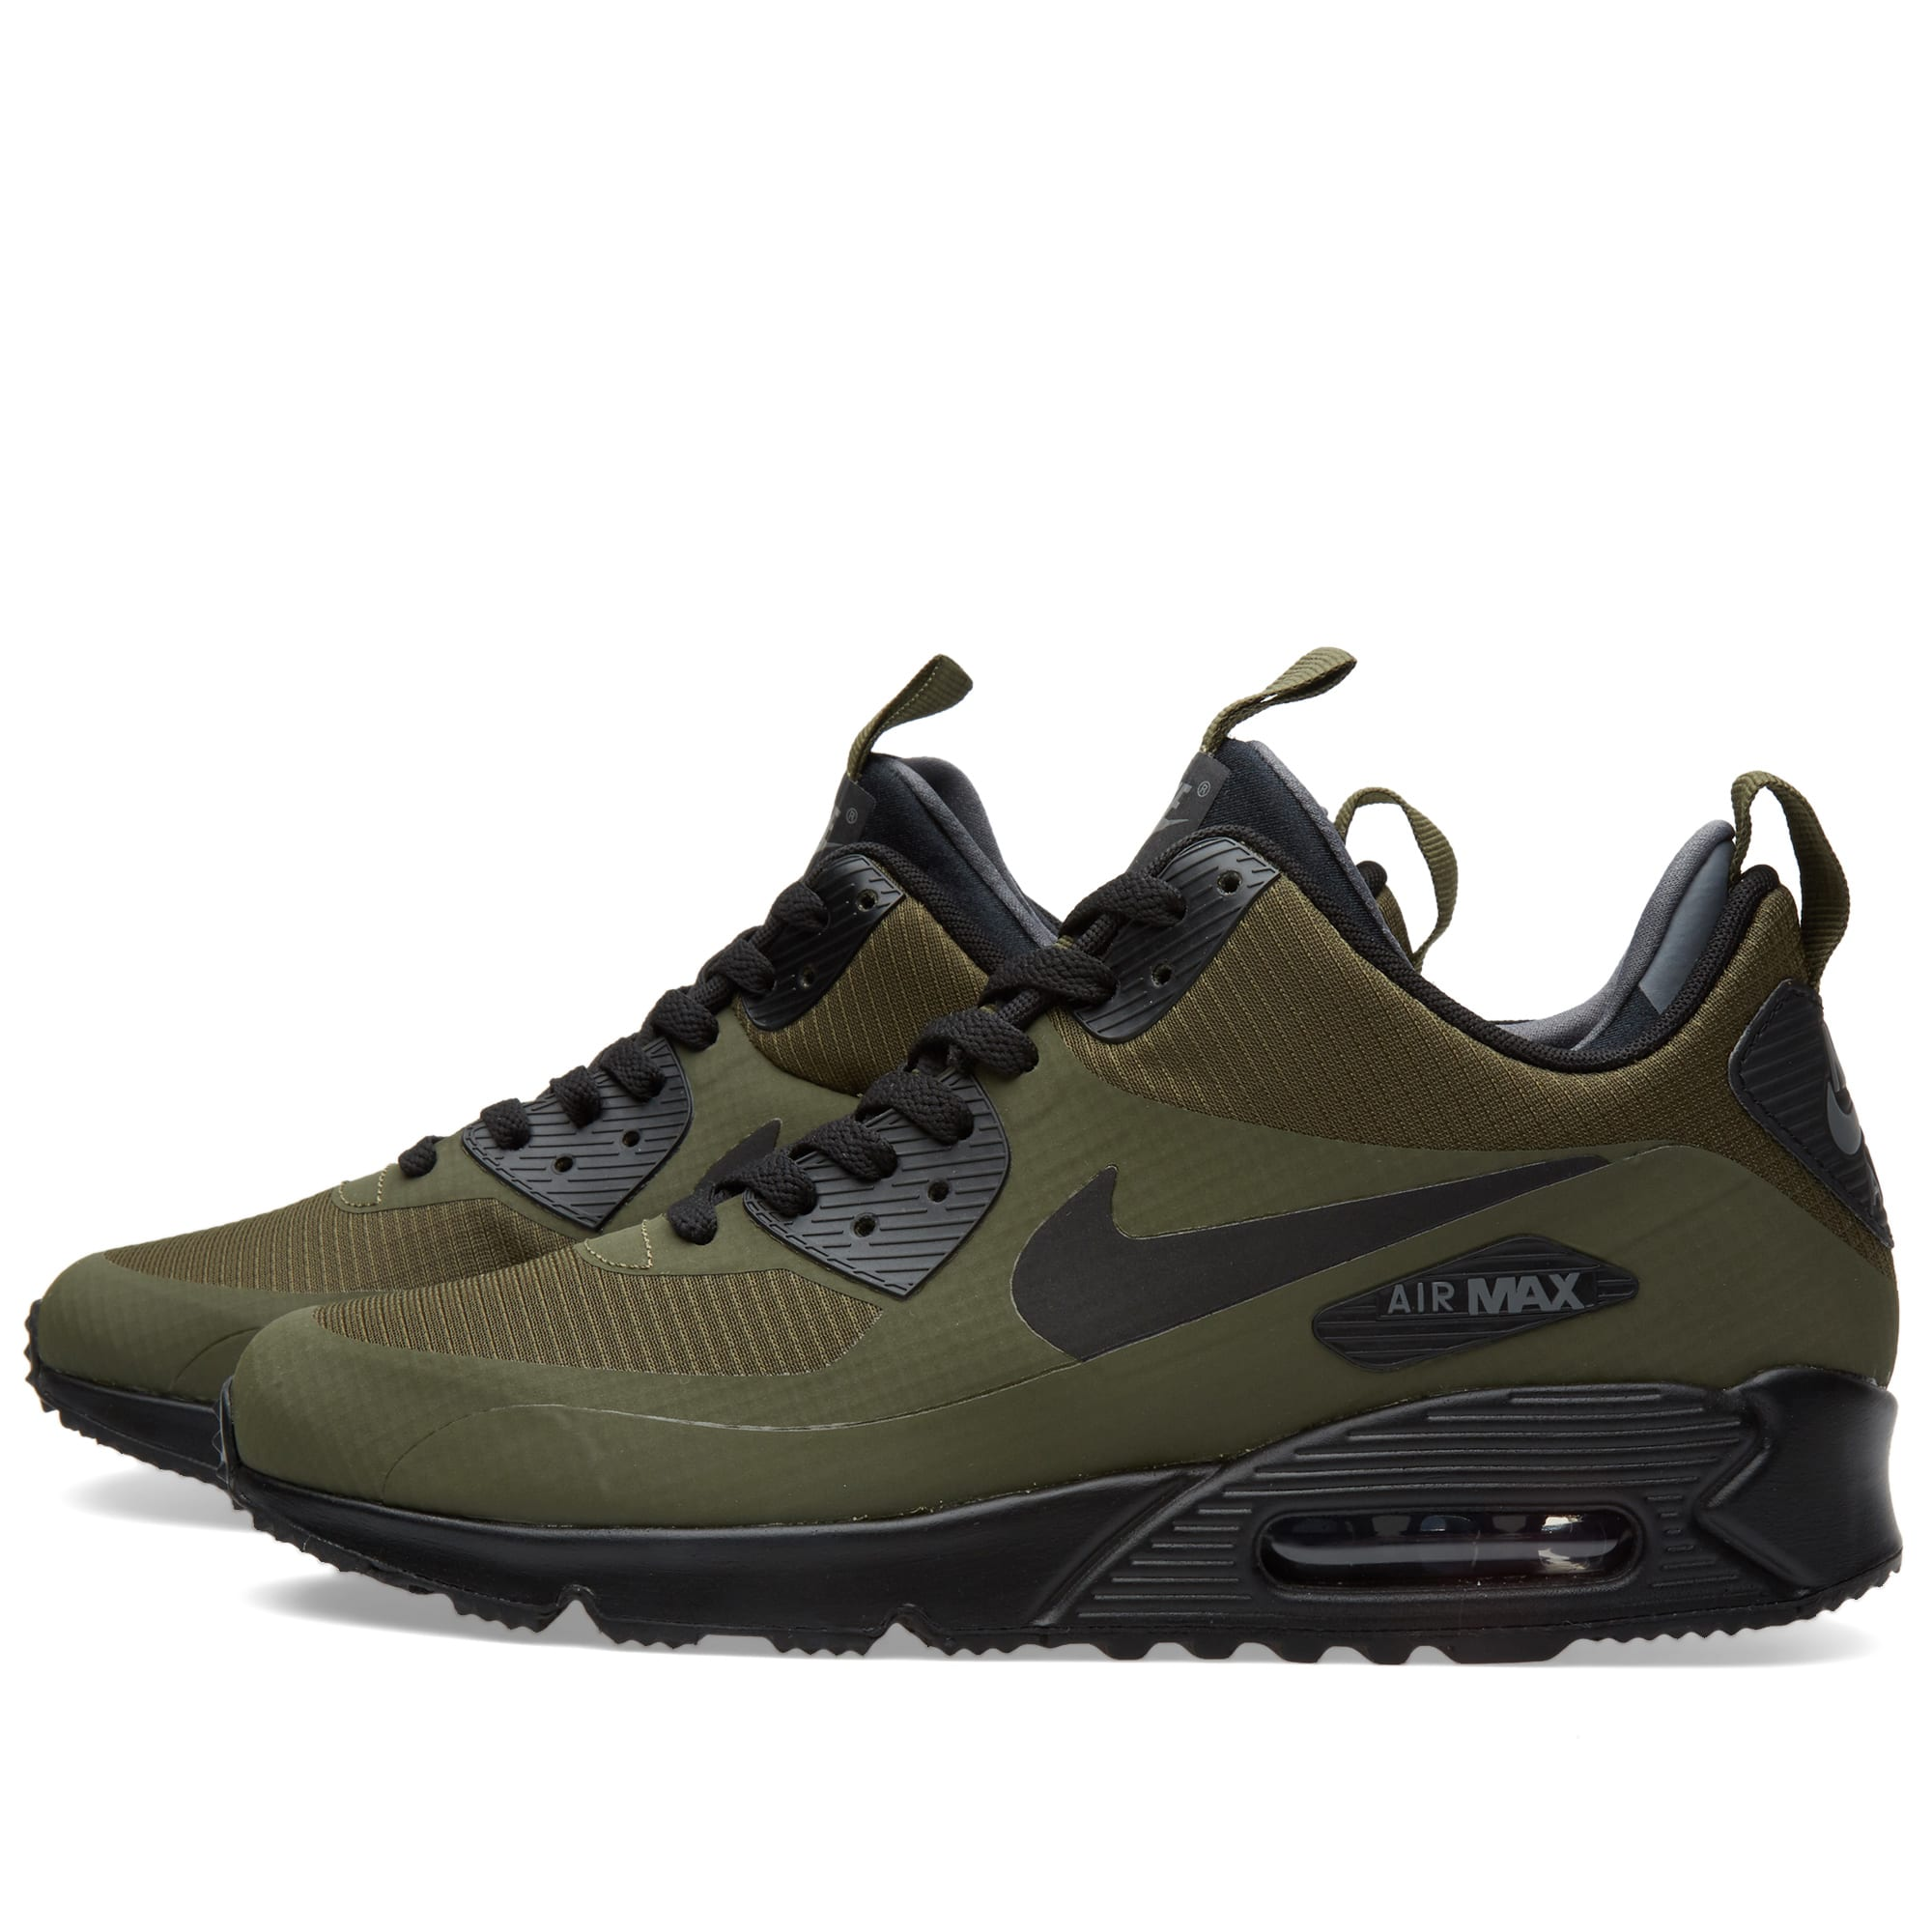 best loved a5c27 61a32 Nike Air Max 90 Mid Winter Dark Loden   Black   END.